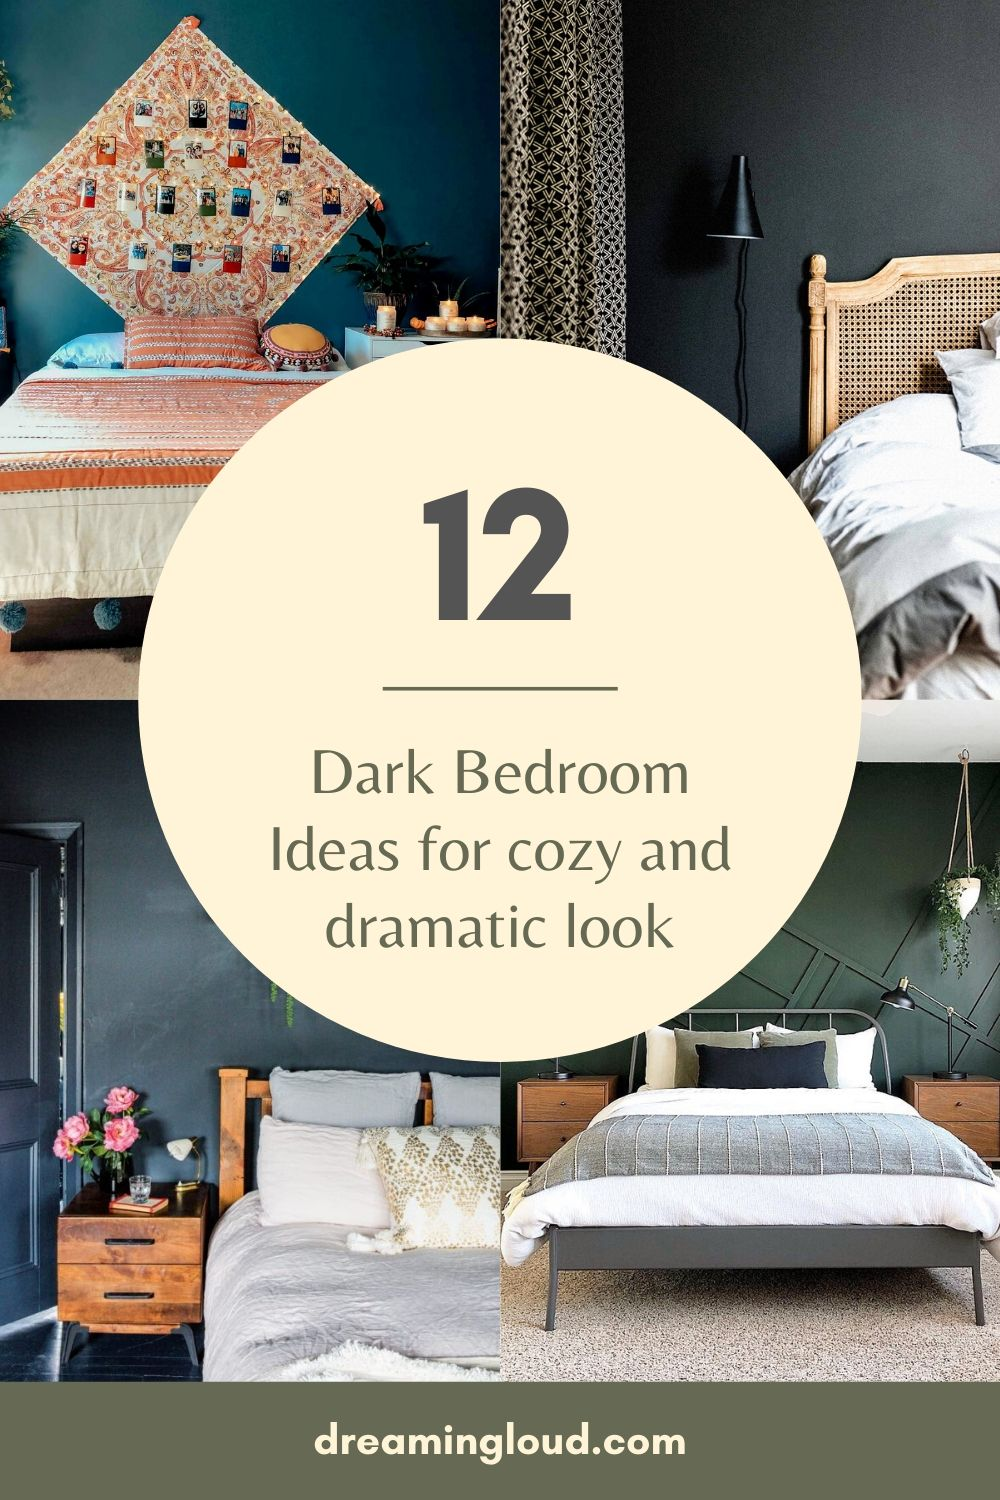 Dark Bedroom Ideas Michigan Life And Style Dreaming Loud